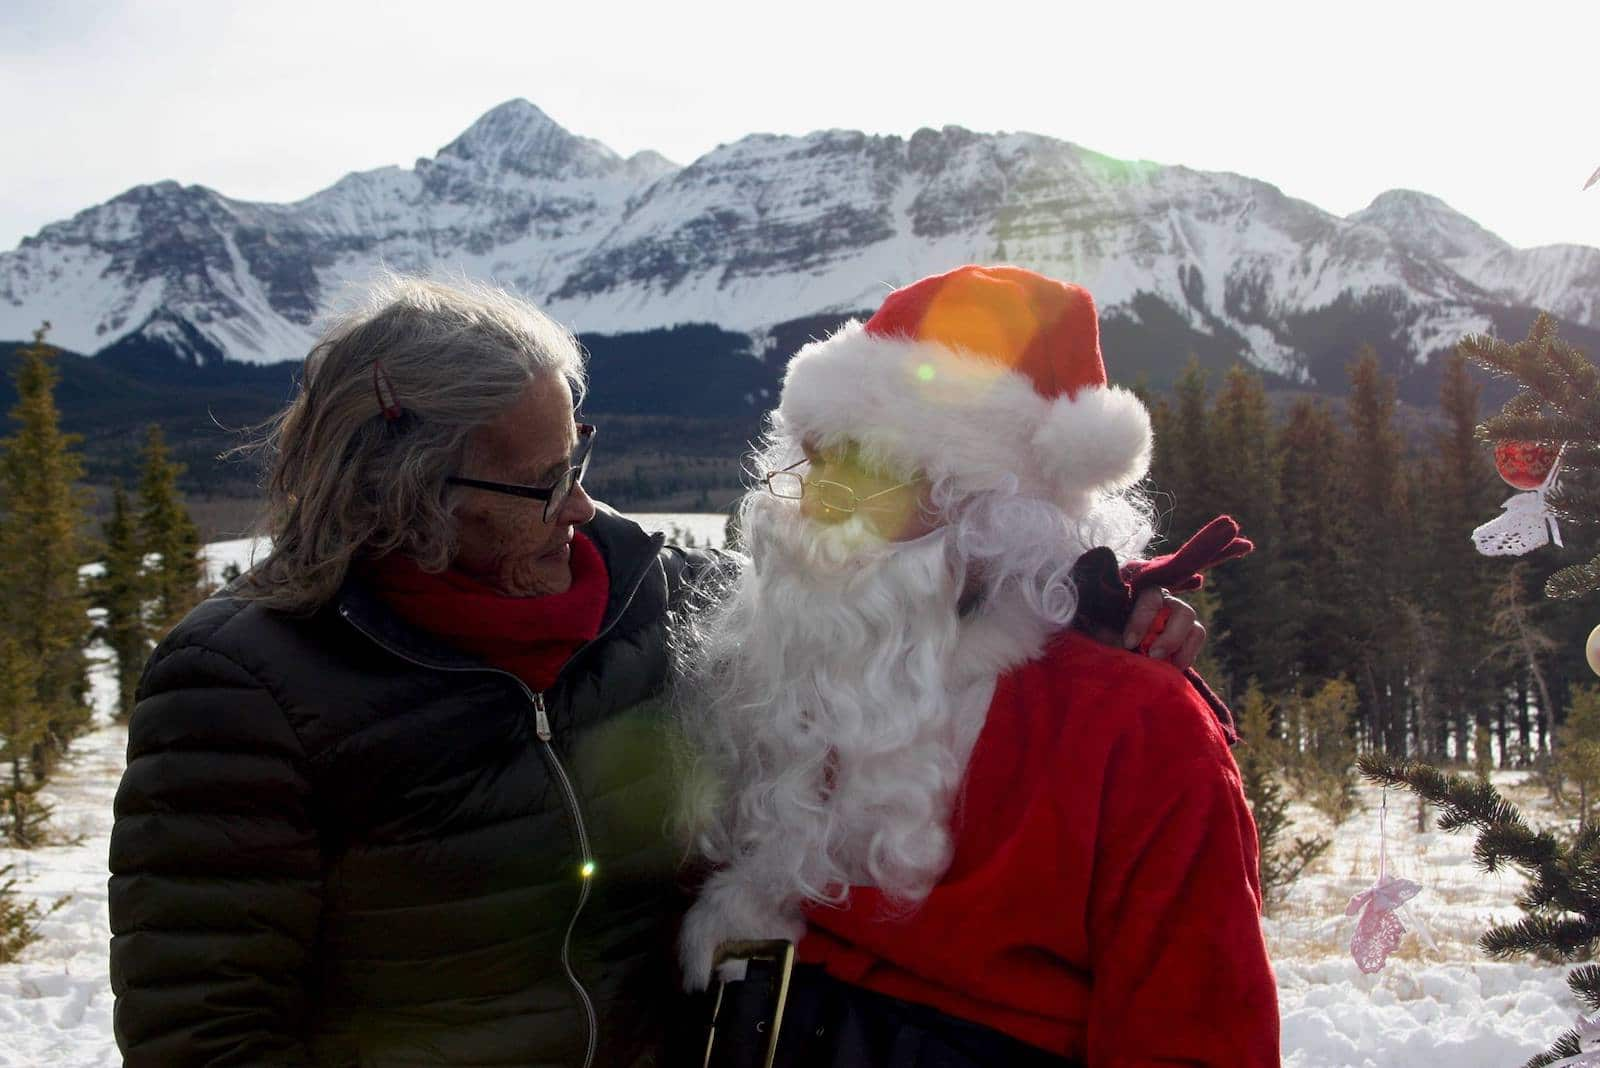 Image of Santa and Mrs. Claus with the mountains in the background in Telluride, Colorado